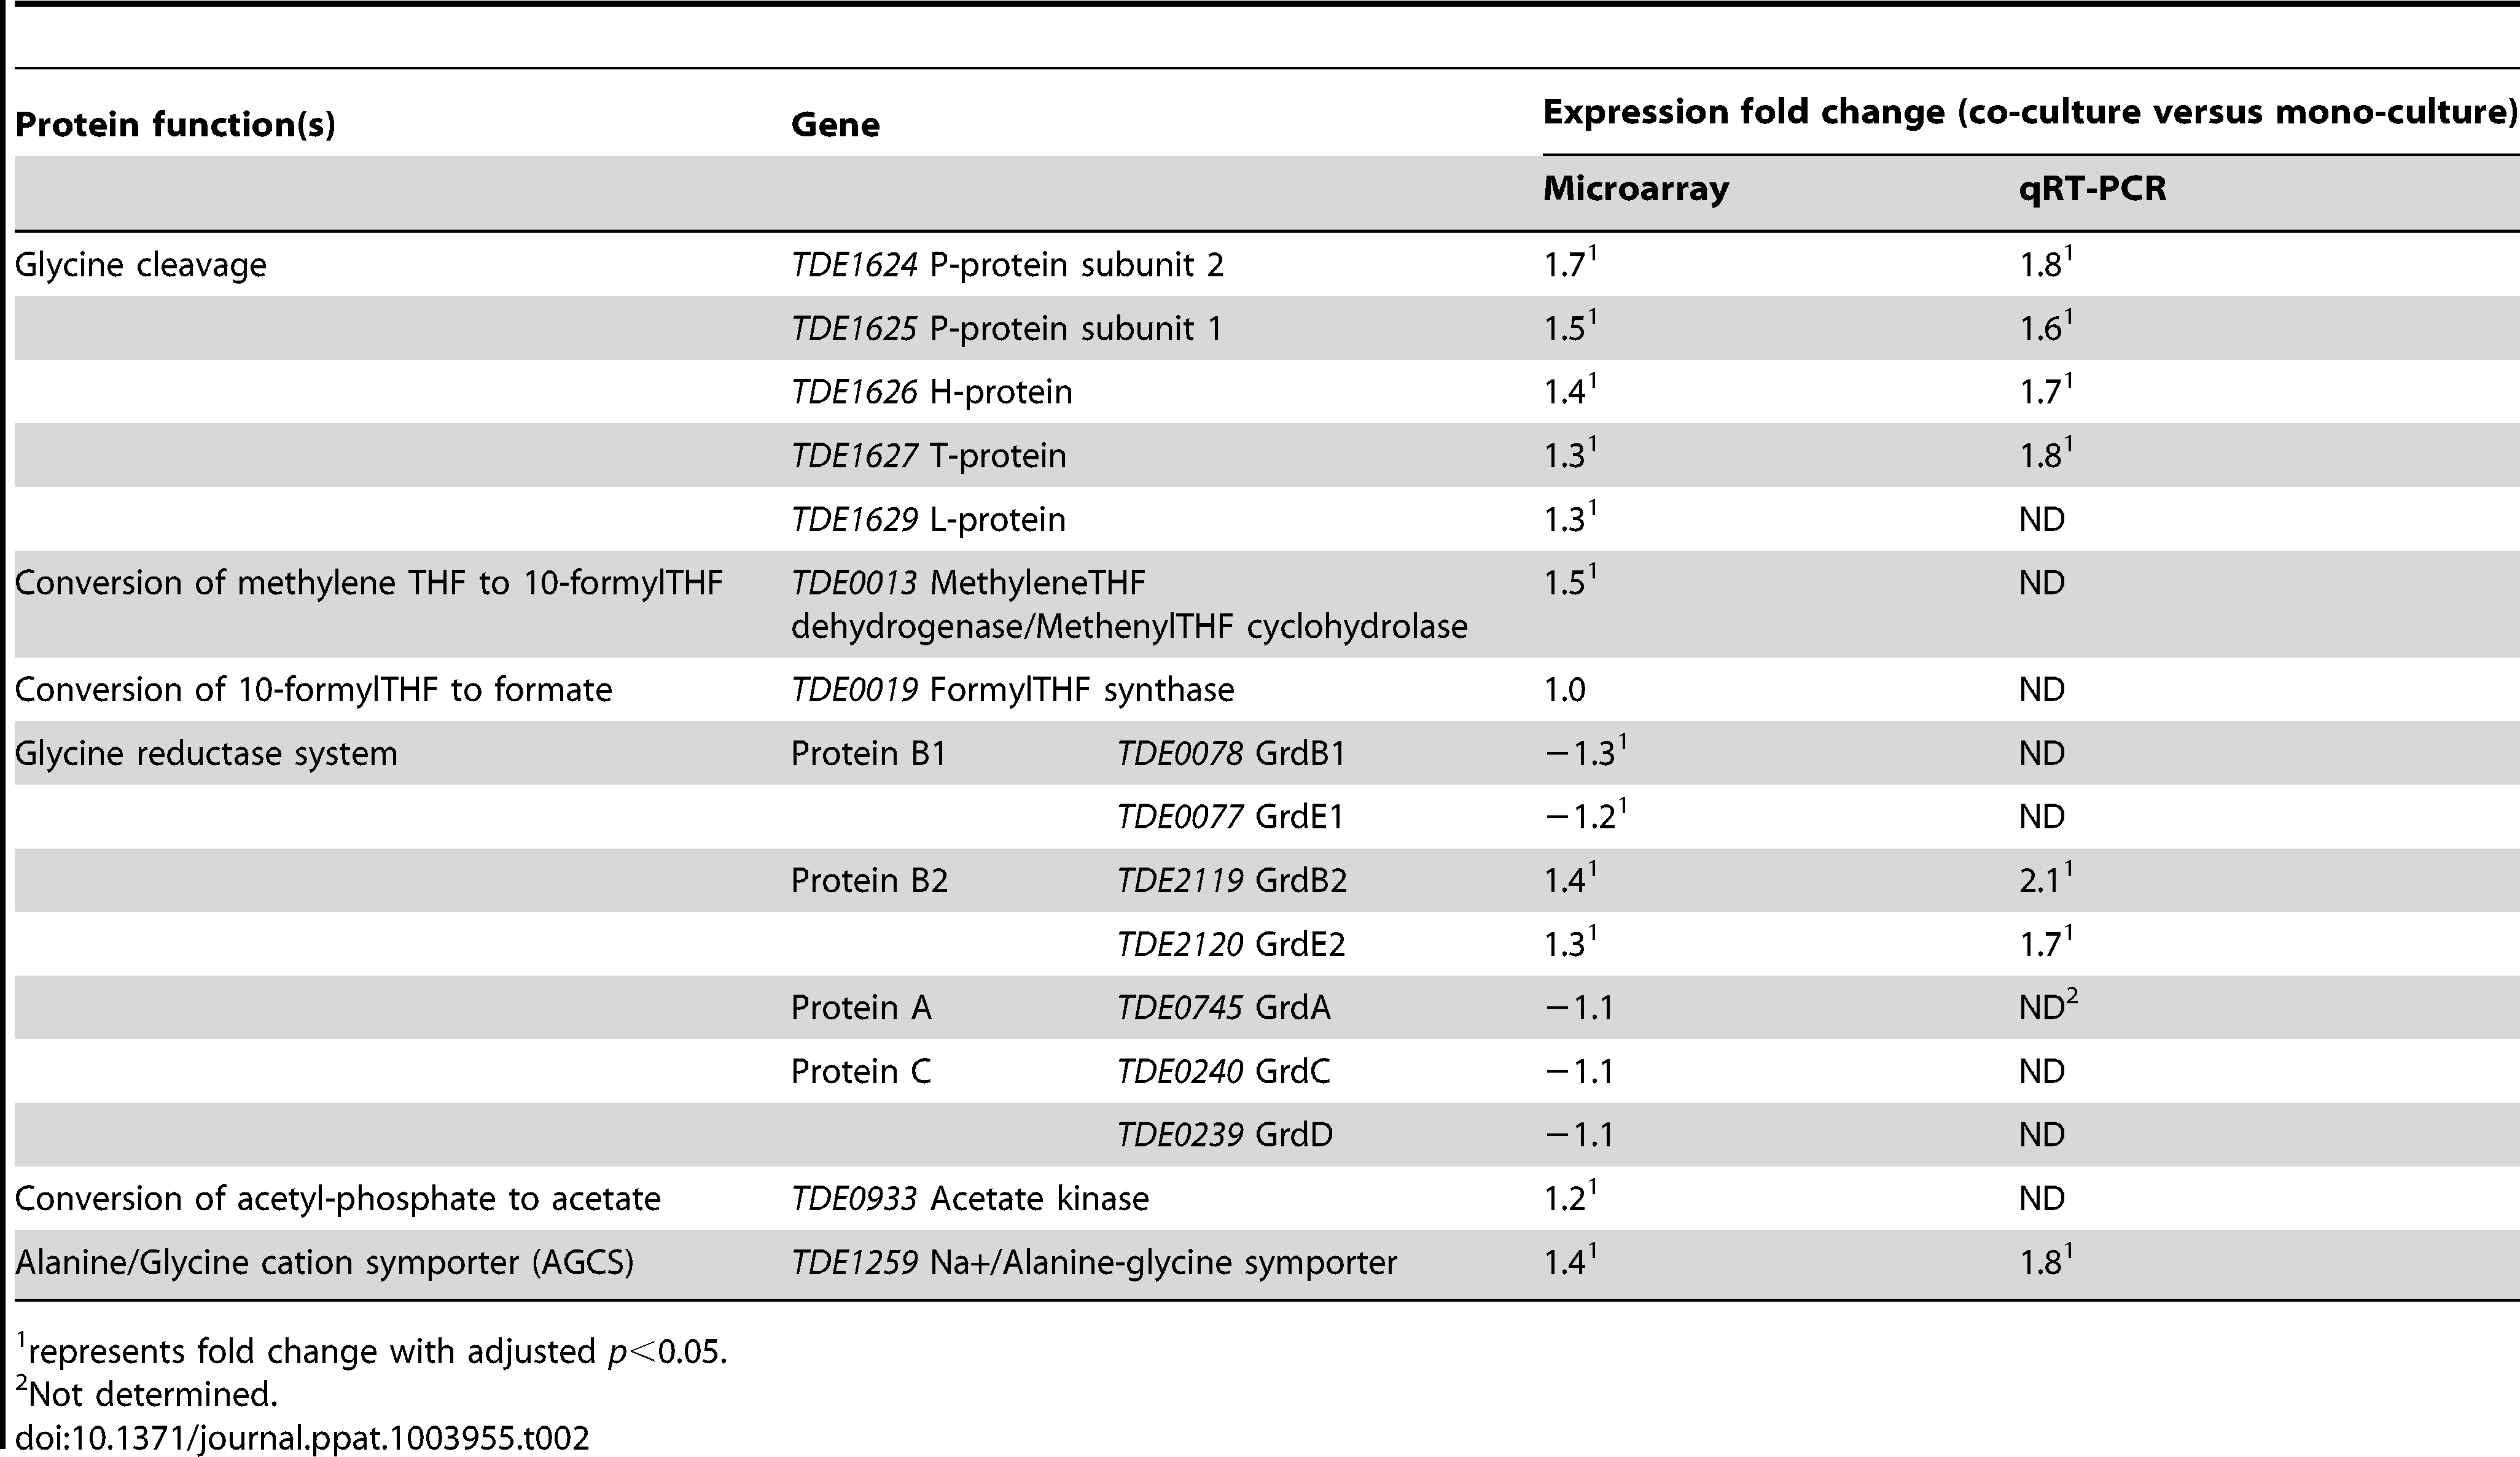 Expression of <i>T. denticola</i> genes encoding enzymes involved in glycine or glycine-related metabolism during co-culture with <i>P. gingivalis</i>.